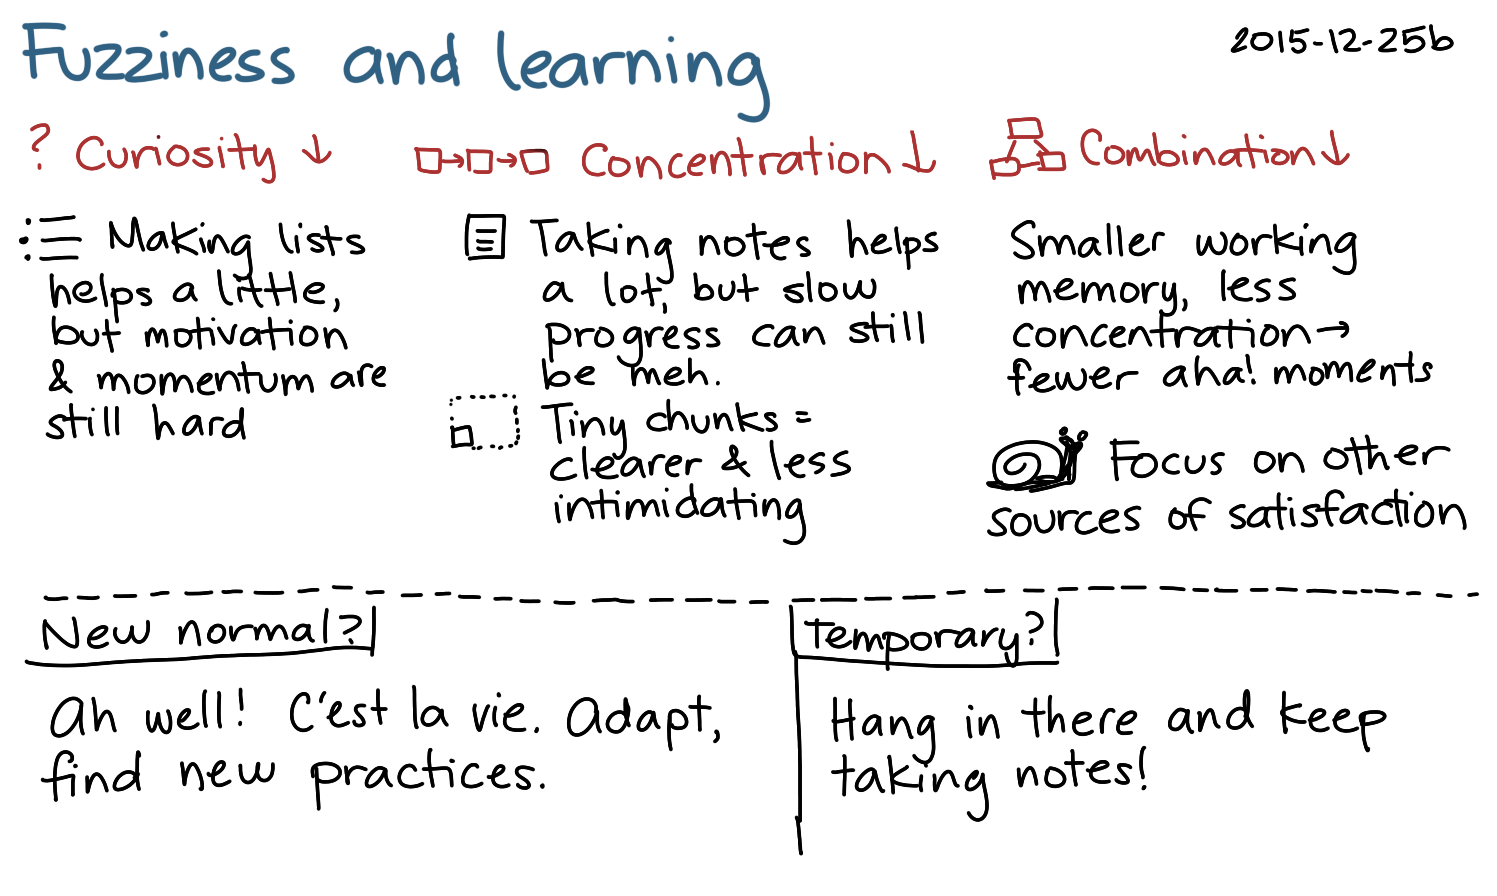 2015-12-25b Fuzziness and learning -- index card #fuzzy #learning.png